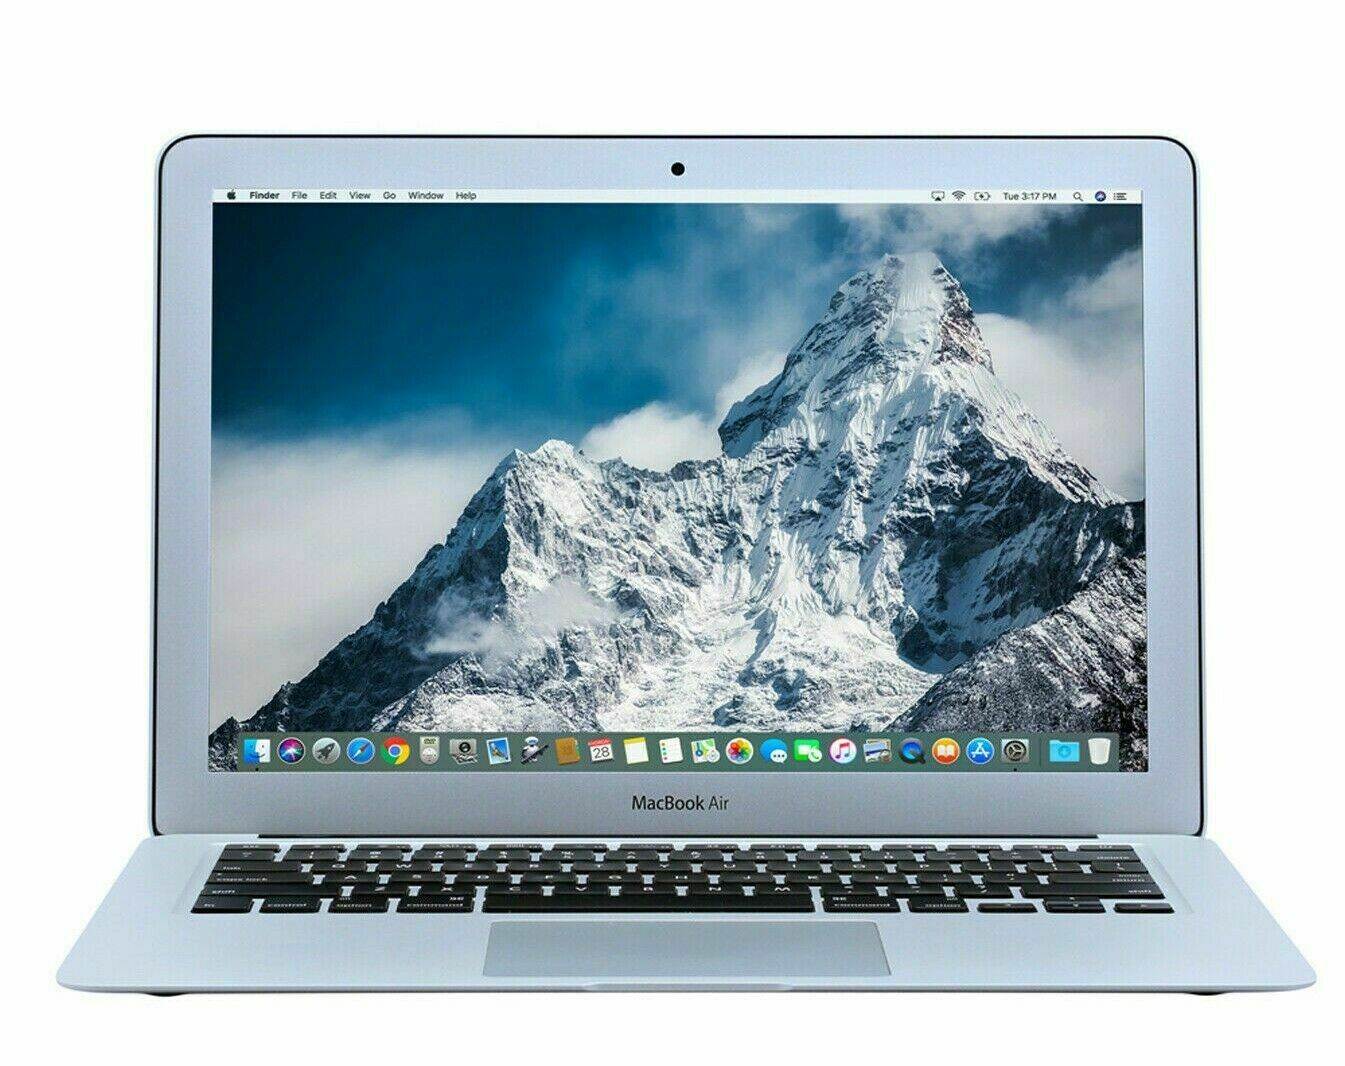 Apple MacBook Air 13 Laptop | MacOS2020 | 3 Year Warranty | 256GB SSD | GRAY. Buy it now for 599.00